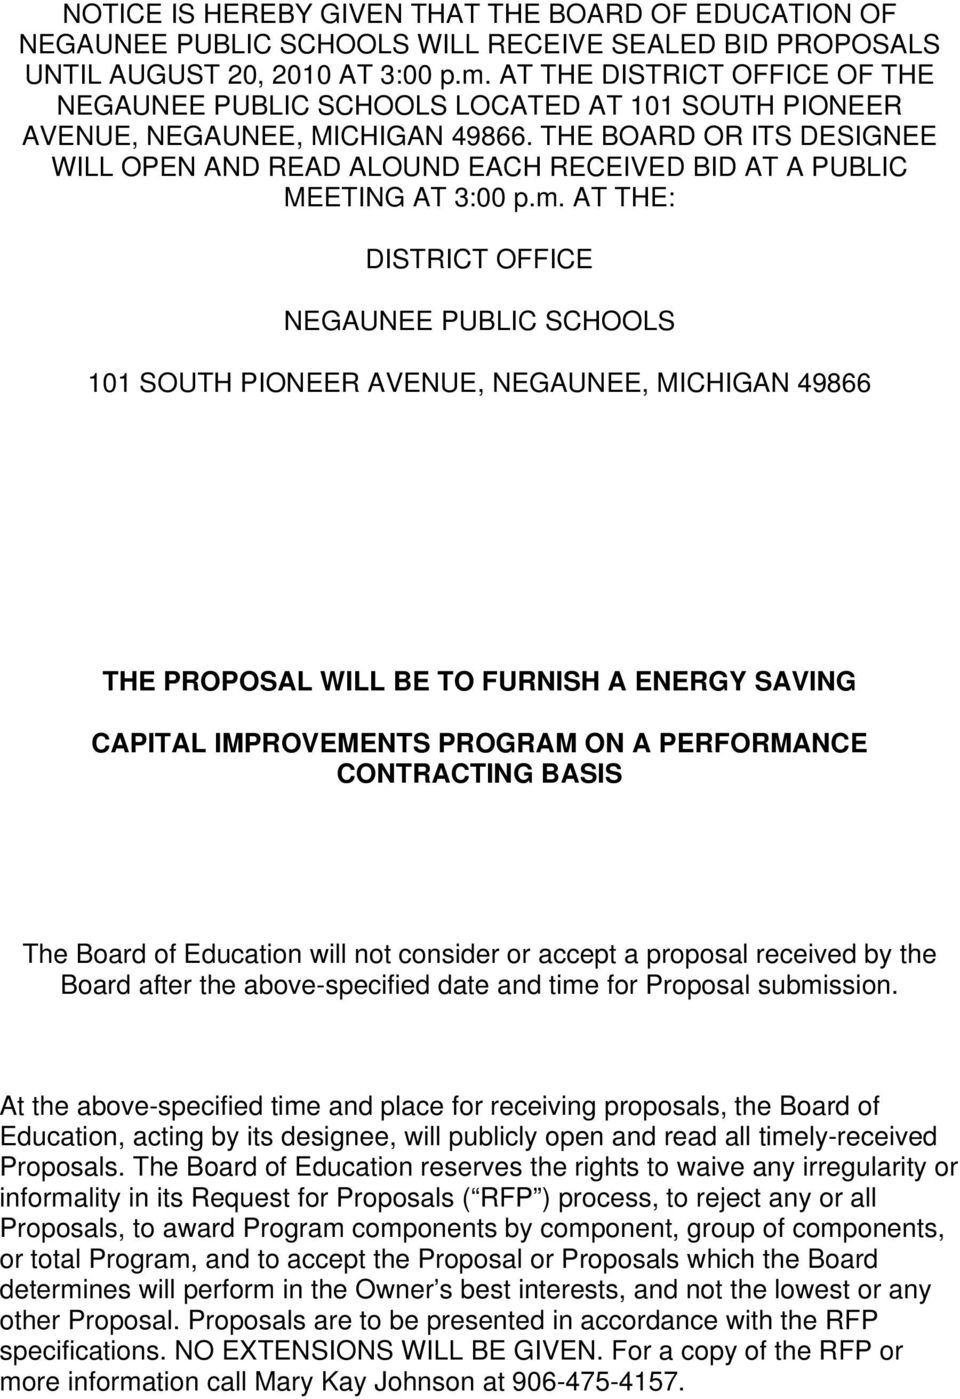 THE BOARD OR ITS DESIGNEE WILL OPEN AND READ ALOUND EACH RECEIVED BID AT A PUBLIC MEETING AT 3:00 p.m.